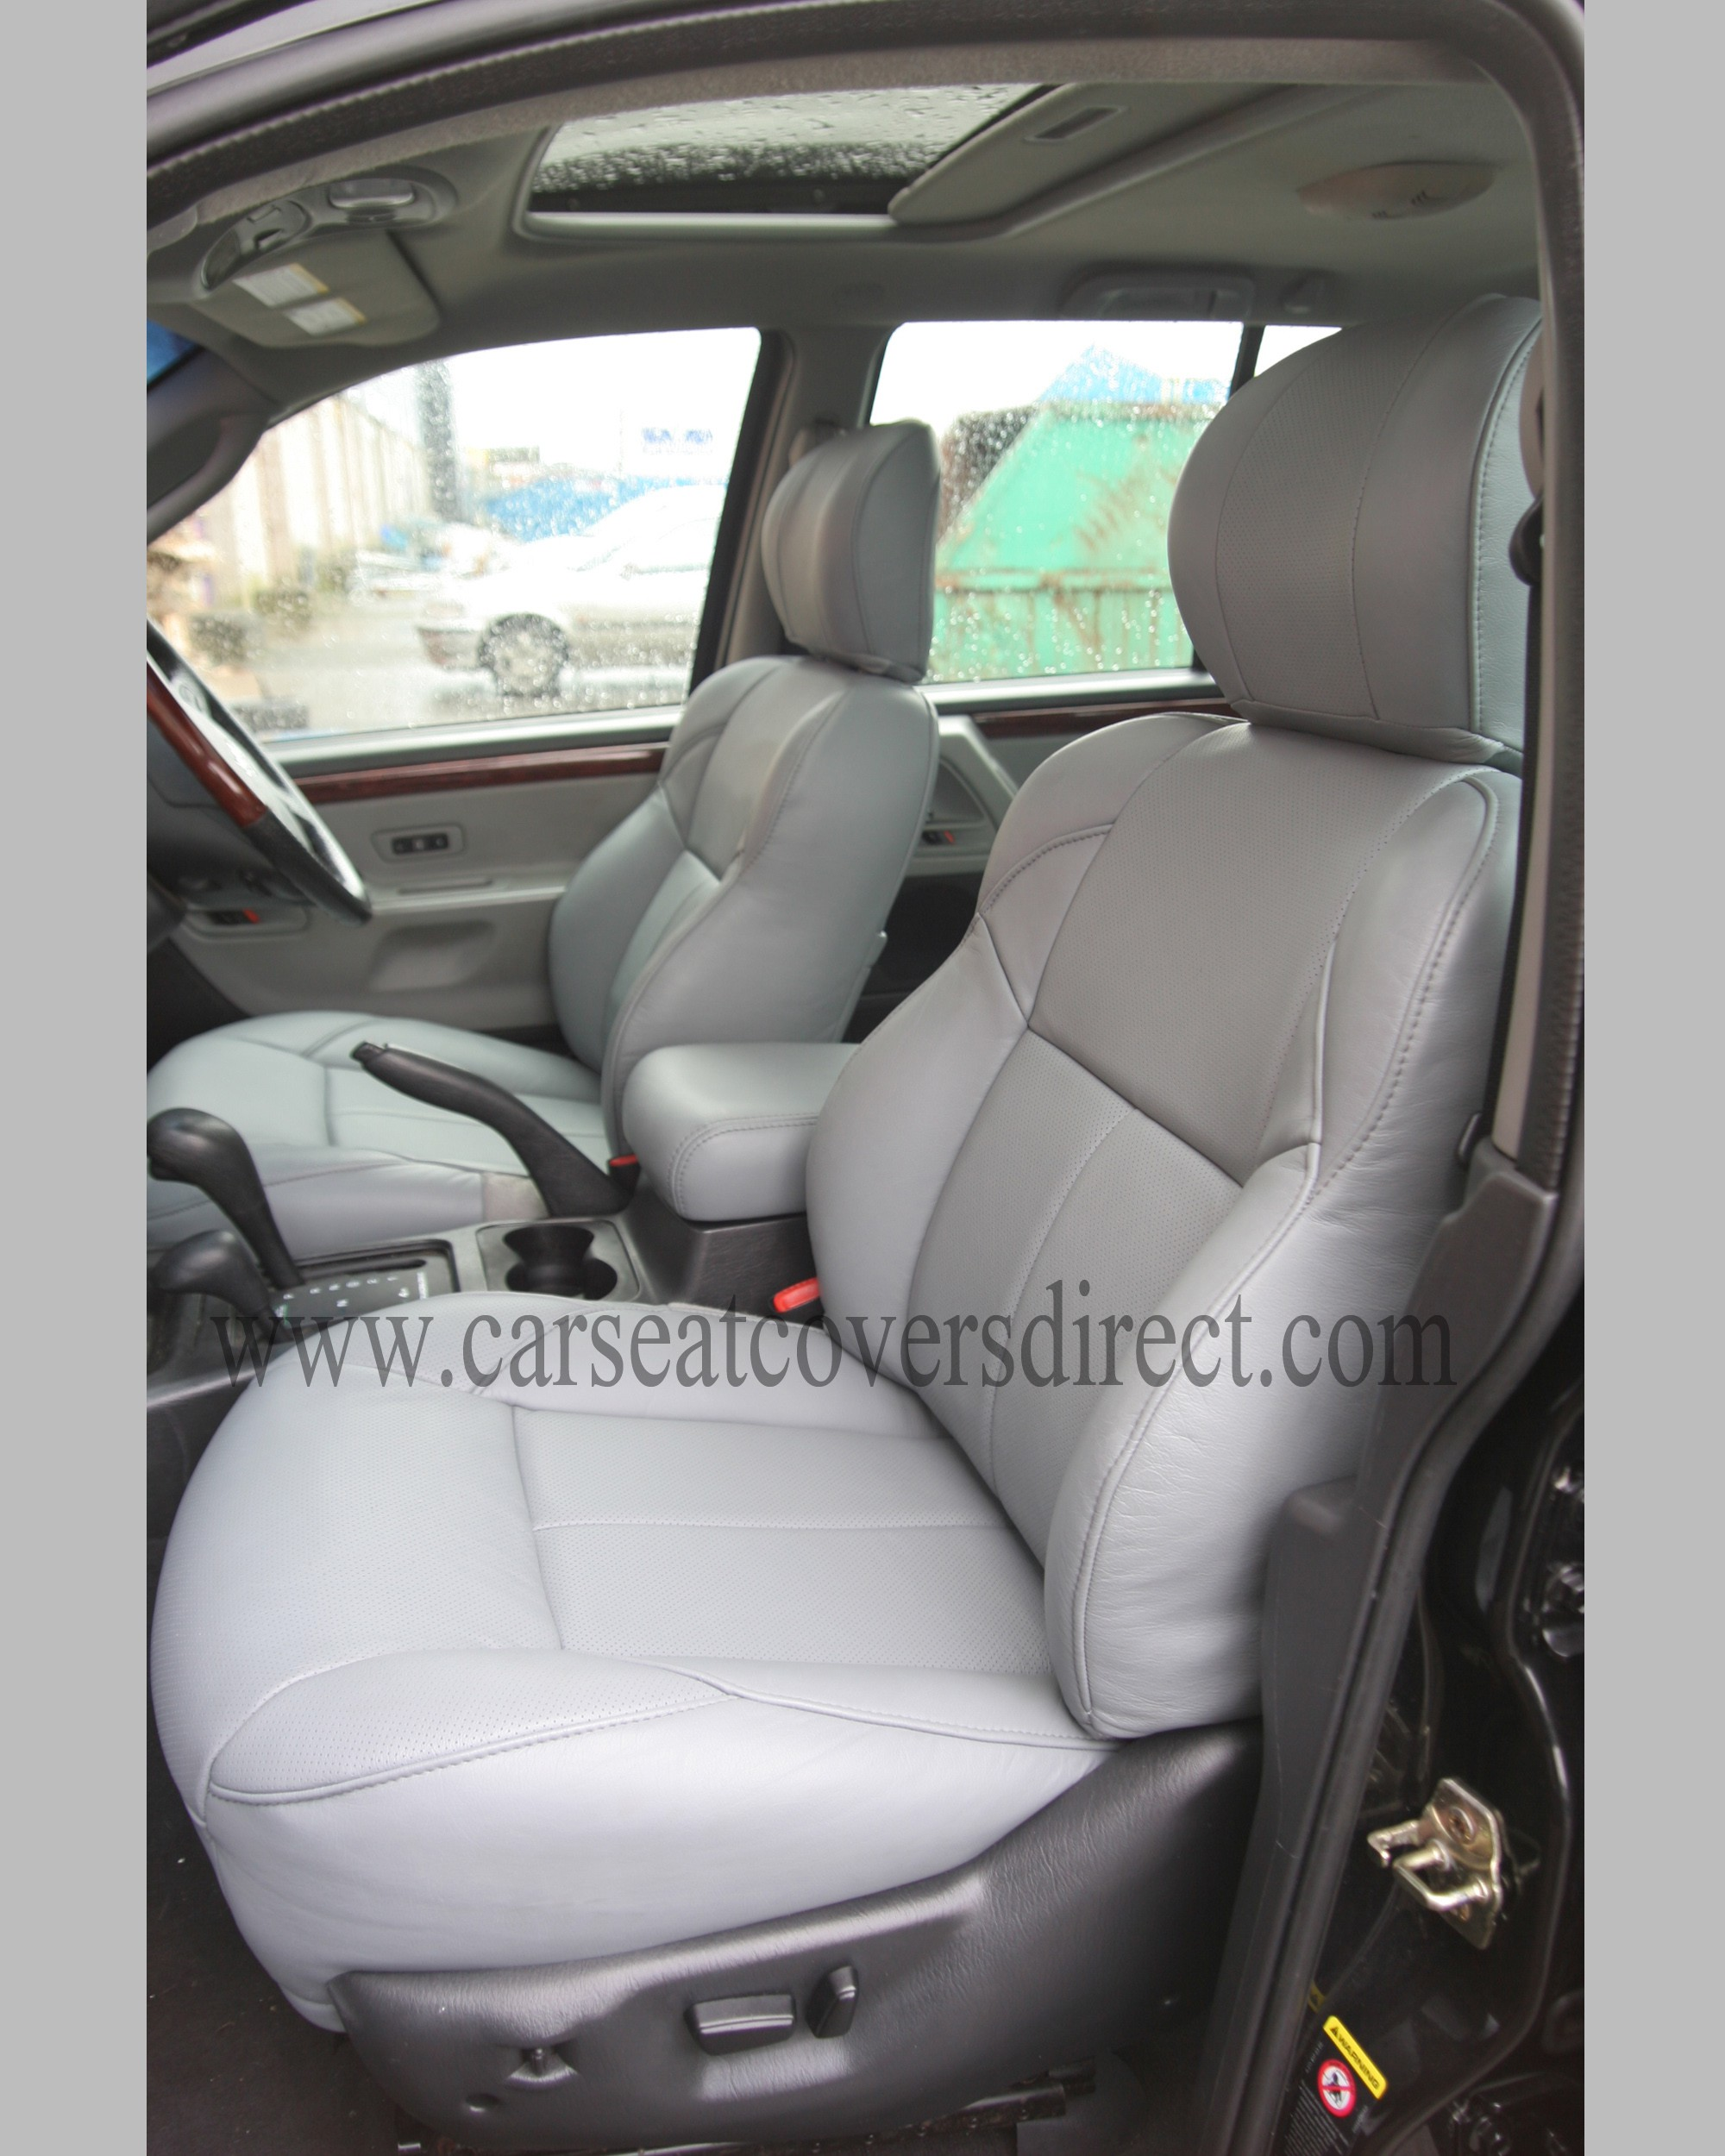 CHRYSLER JEEP CHEROKEE LEATHER RETRIM